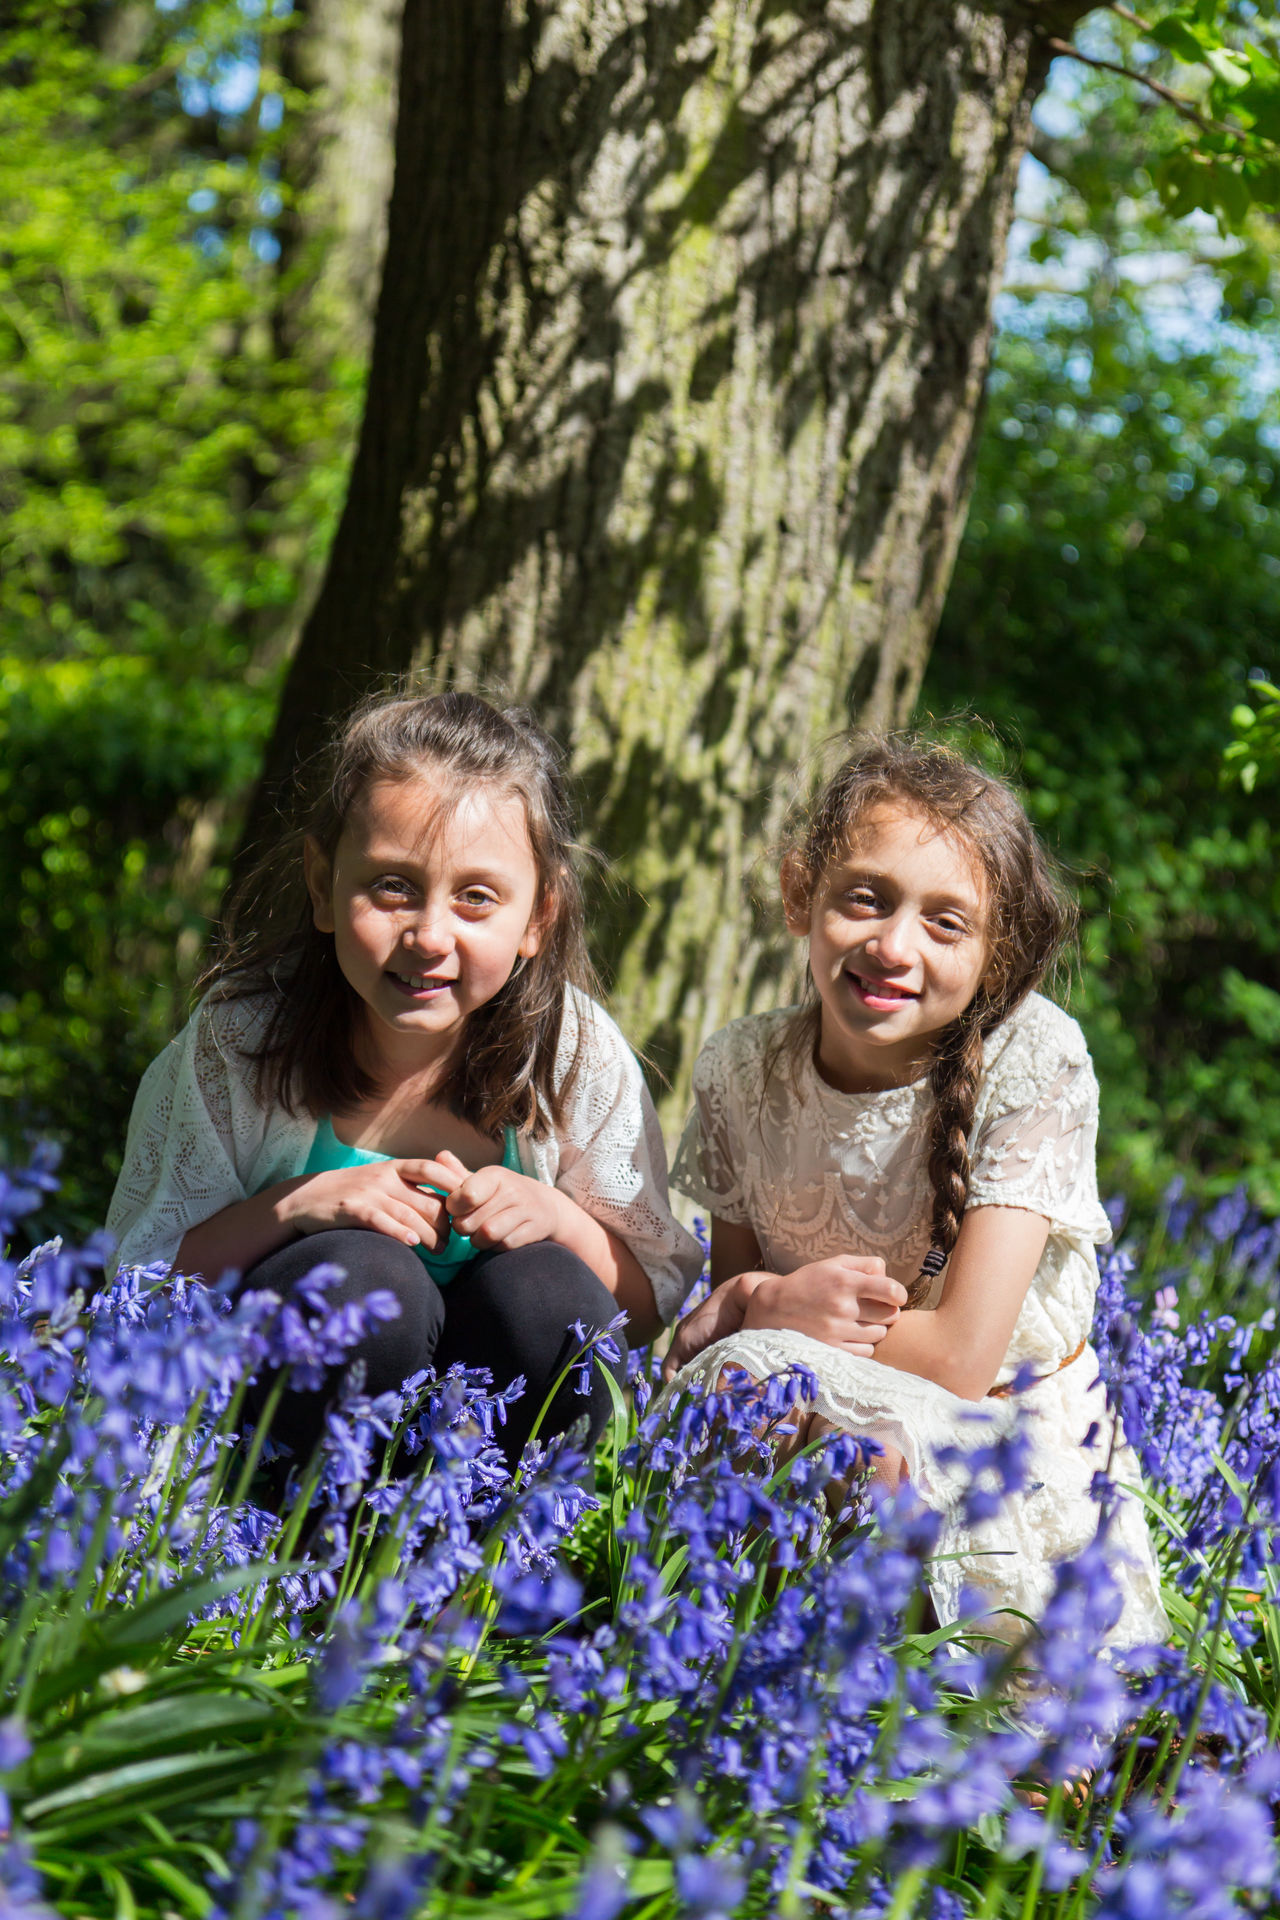 Happy cute sisters, Children in a park in Leicester having a good time. Blur Background Caring Sisters Children Photography Day Daytime Flowers,Plants & Garden Happy Kids Interactions Loving Sisters Lush Foliage Outdoors Outside Photography Playing Games Portraits Rural Scene Sisters Young Female